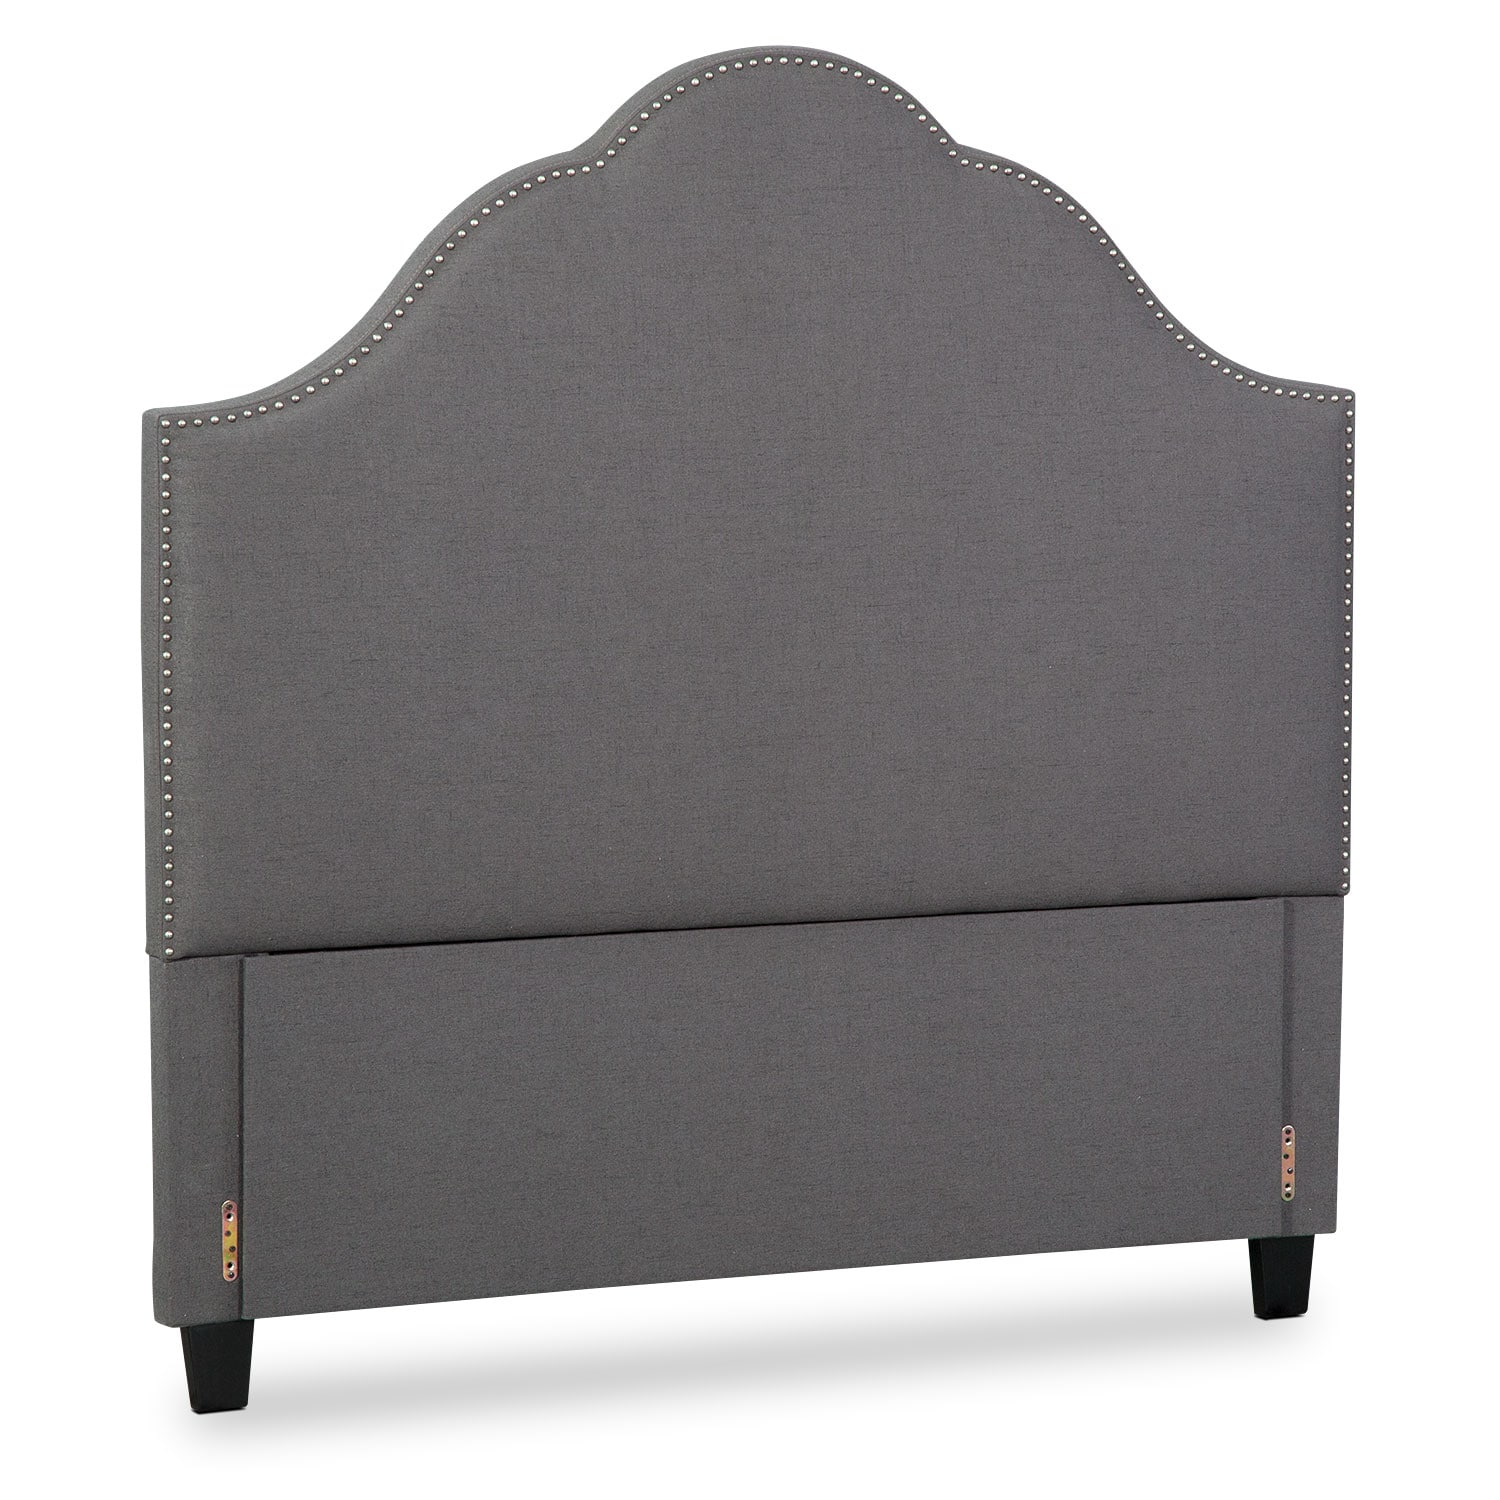 Bedroom Furniture - Maya King Upholstered Headboard - Gray